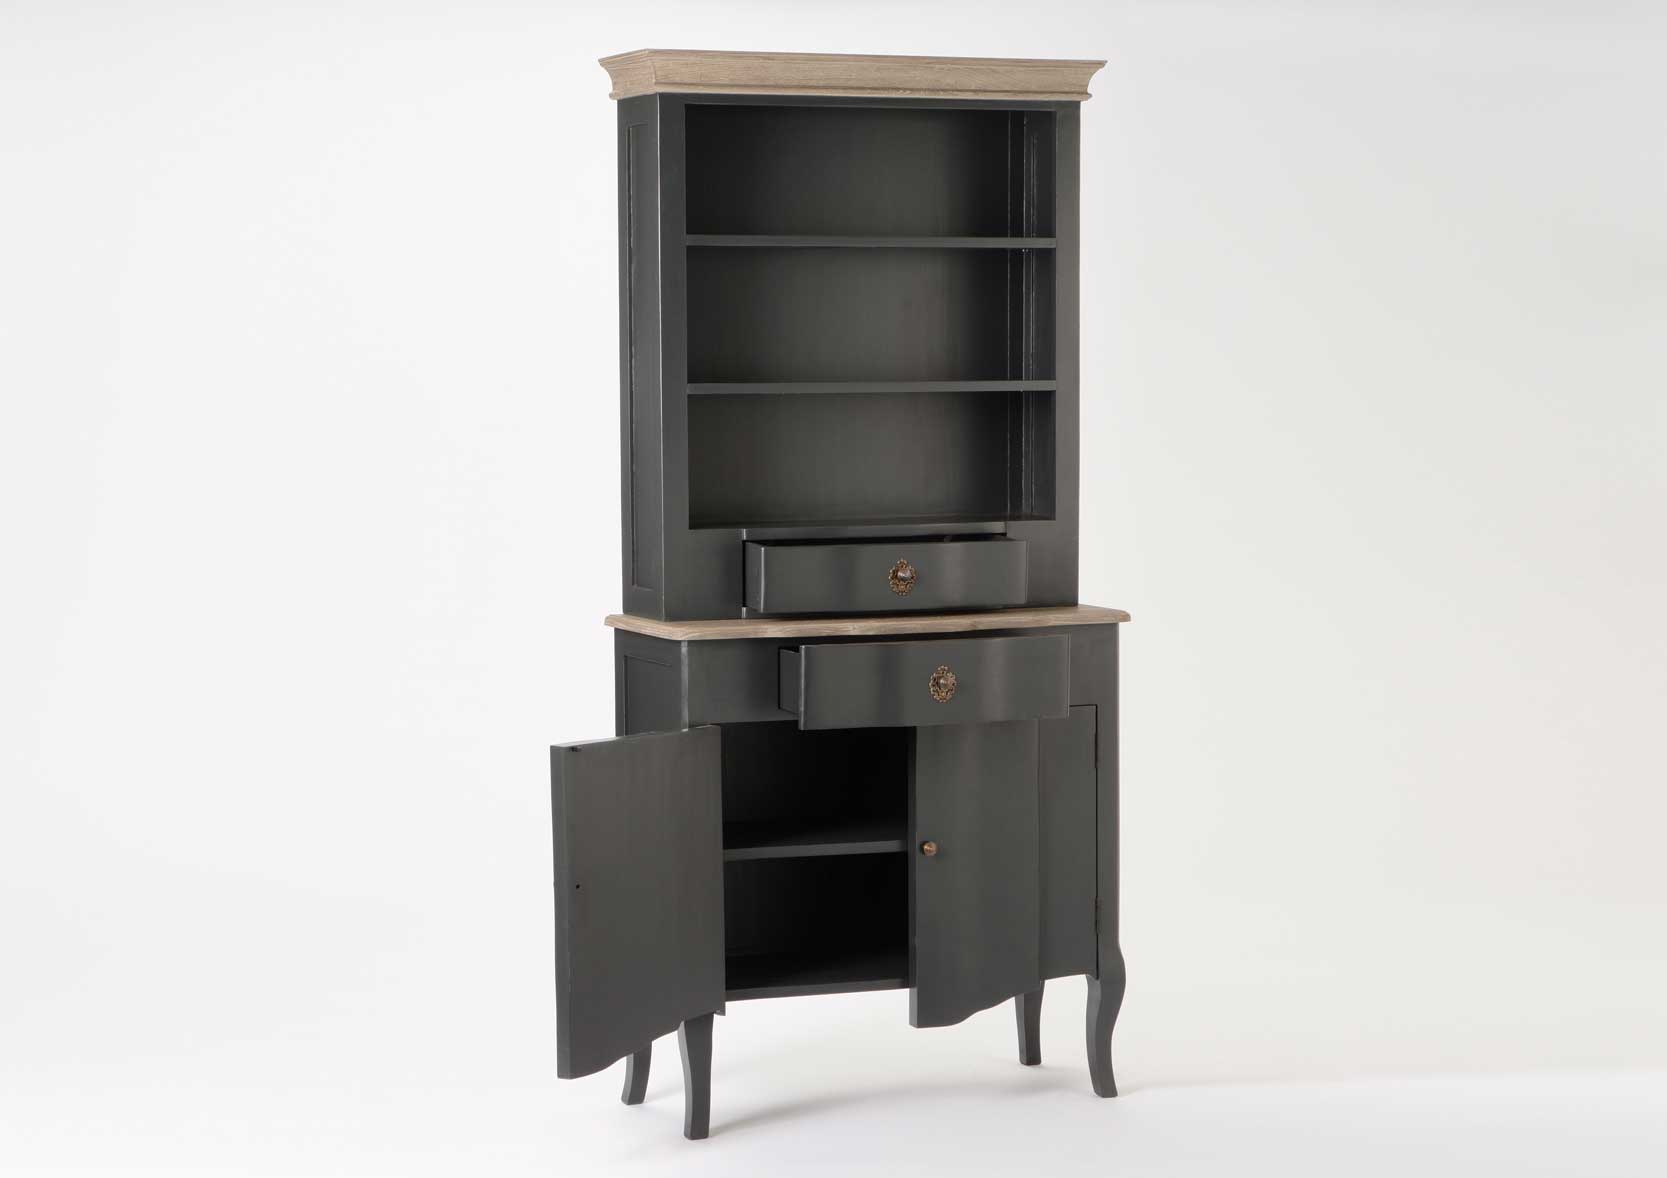 meuble 2 corps c lestine amadeus 122595 d magasin de meubles deco orl ans esprit d. Black Bedroom Furniture Sets. Home Design Ideas